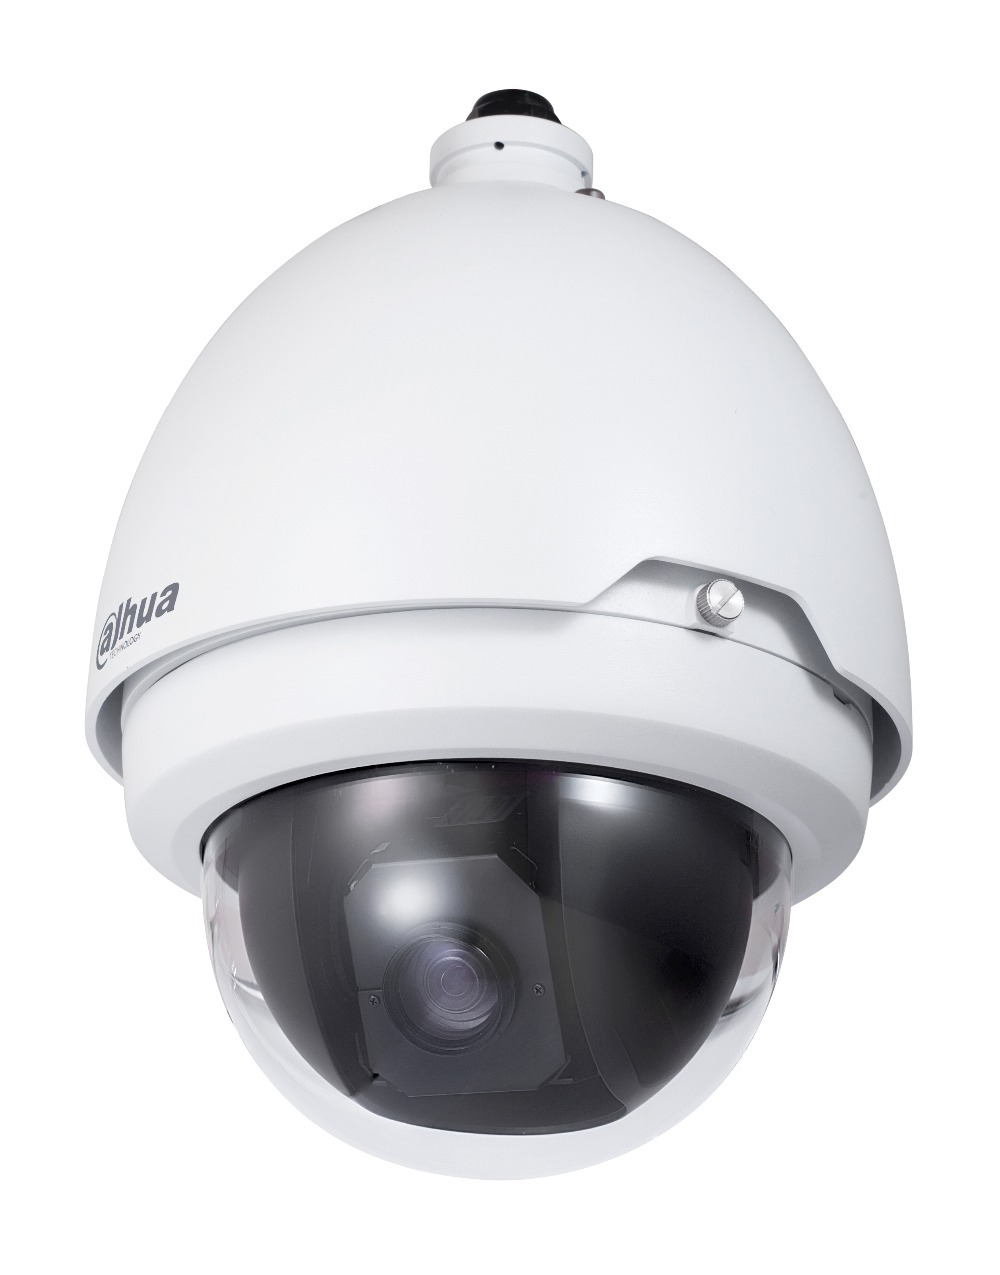 SD6336E-HN EXview HAD CCD 36X Zoom D1 H.264 Wired PTZ Pan/Tilt Outdoor IP Camera for School Metro Hotel(China (Mainland))